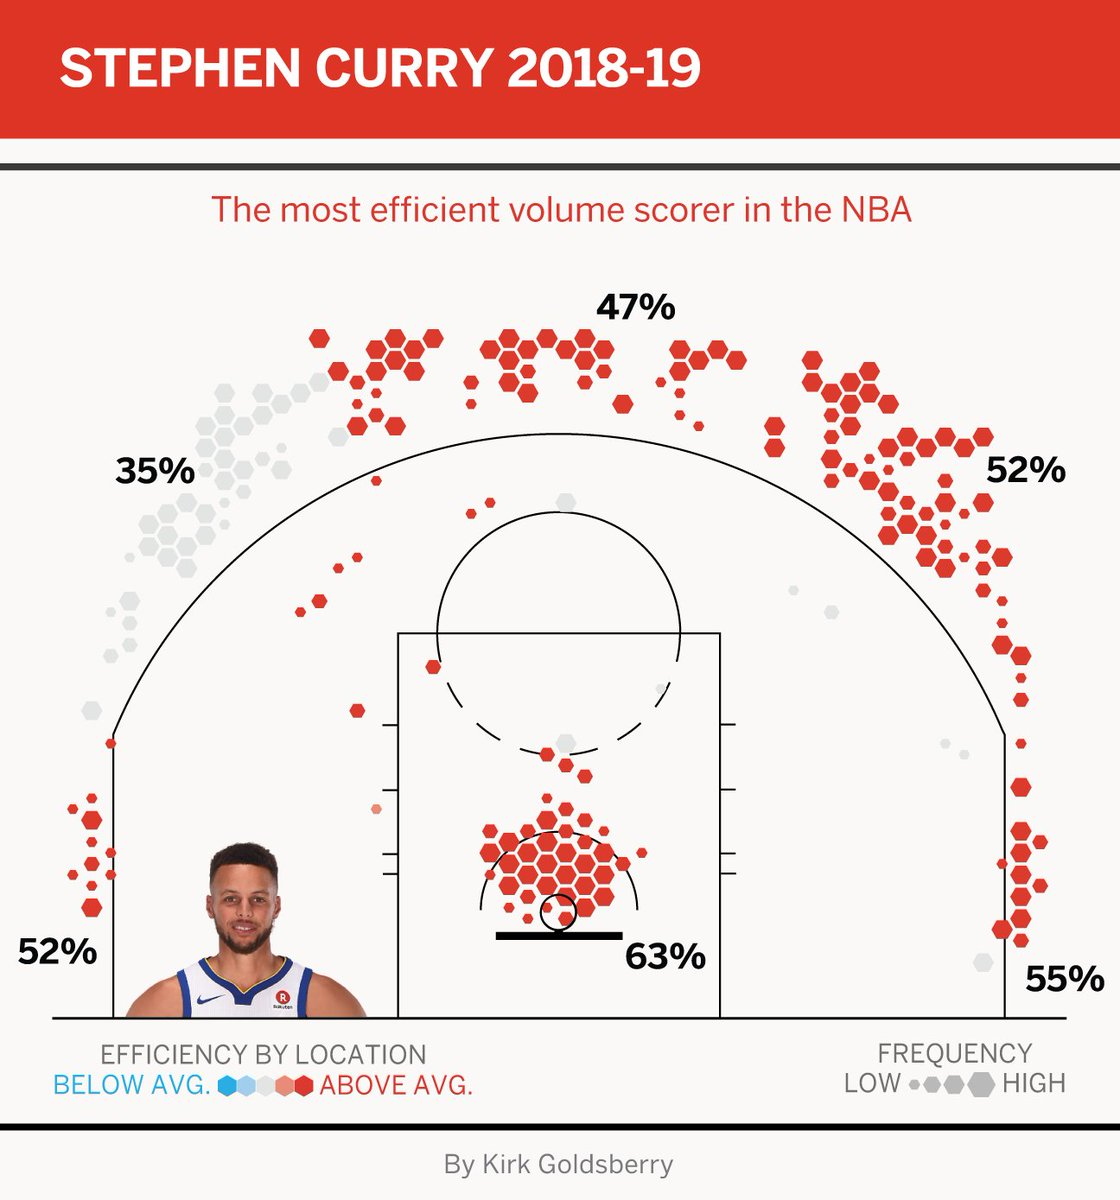 This season @StephenCurry30 is shooting nearly 54% on threes between 30 and 35 feet. Unreal. (via @kirkgoldsberry)<br>http://pic.twitter.com/7aZCePxk2c